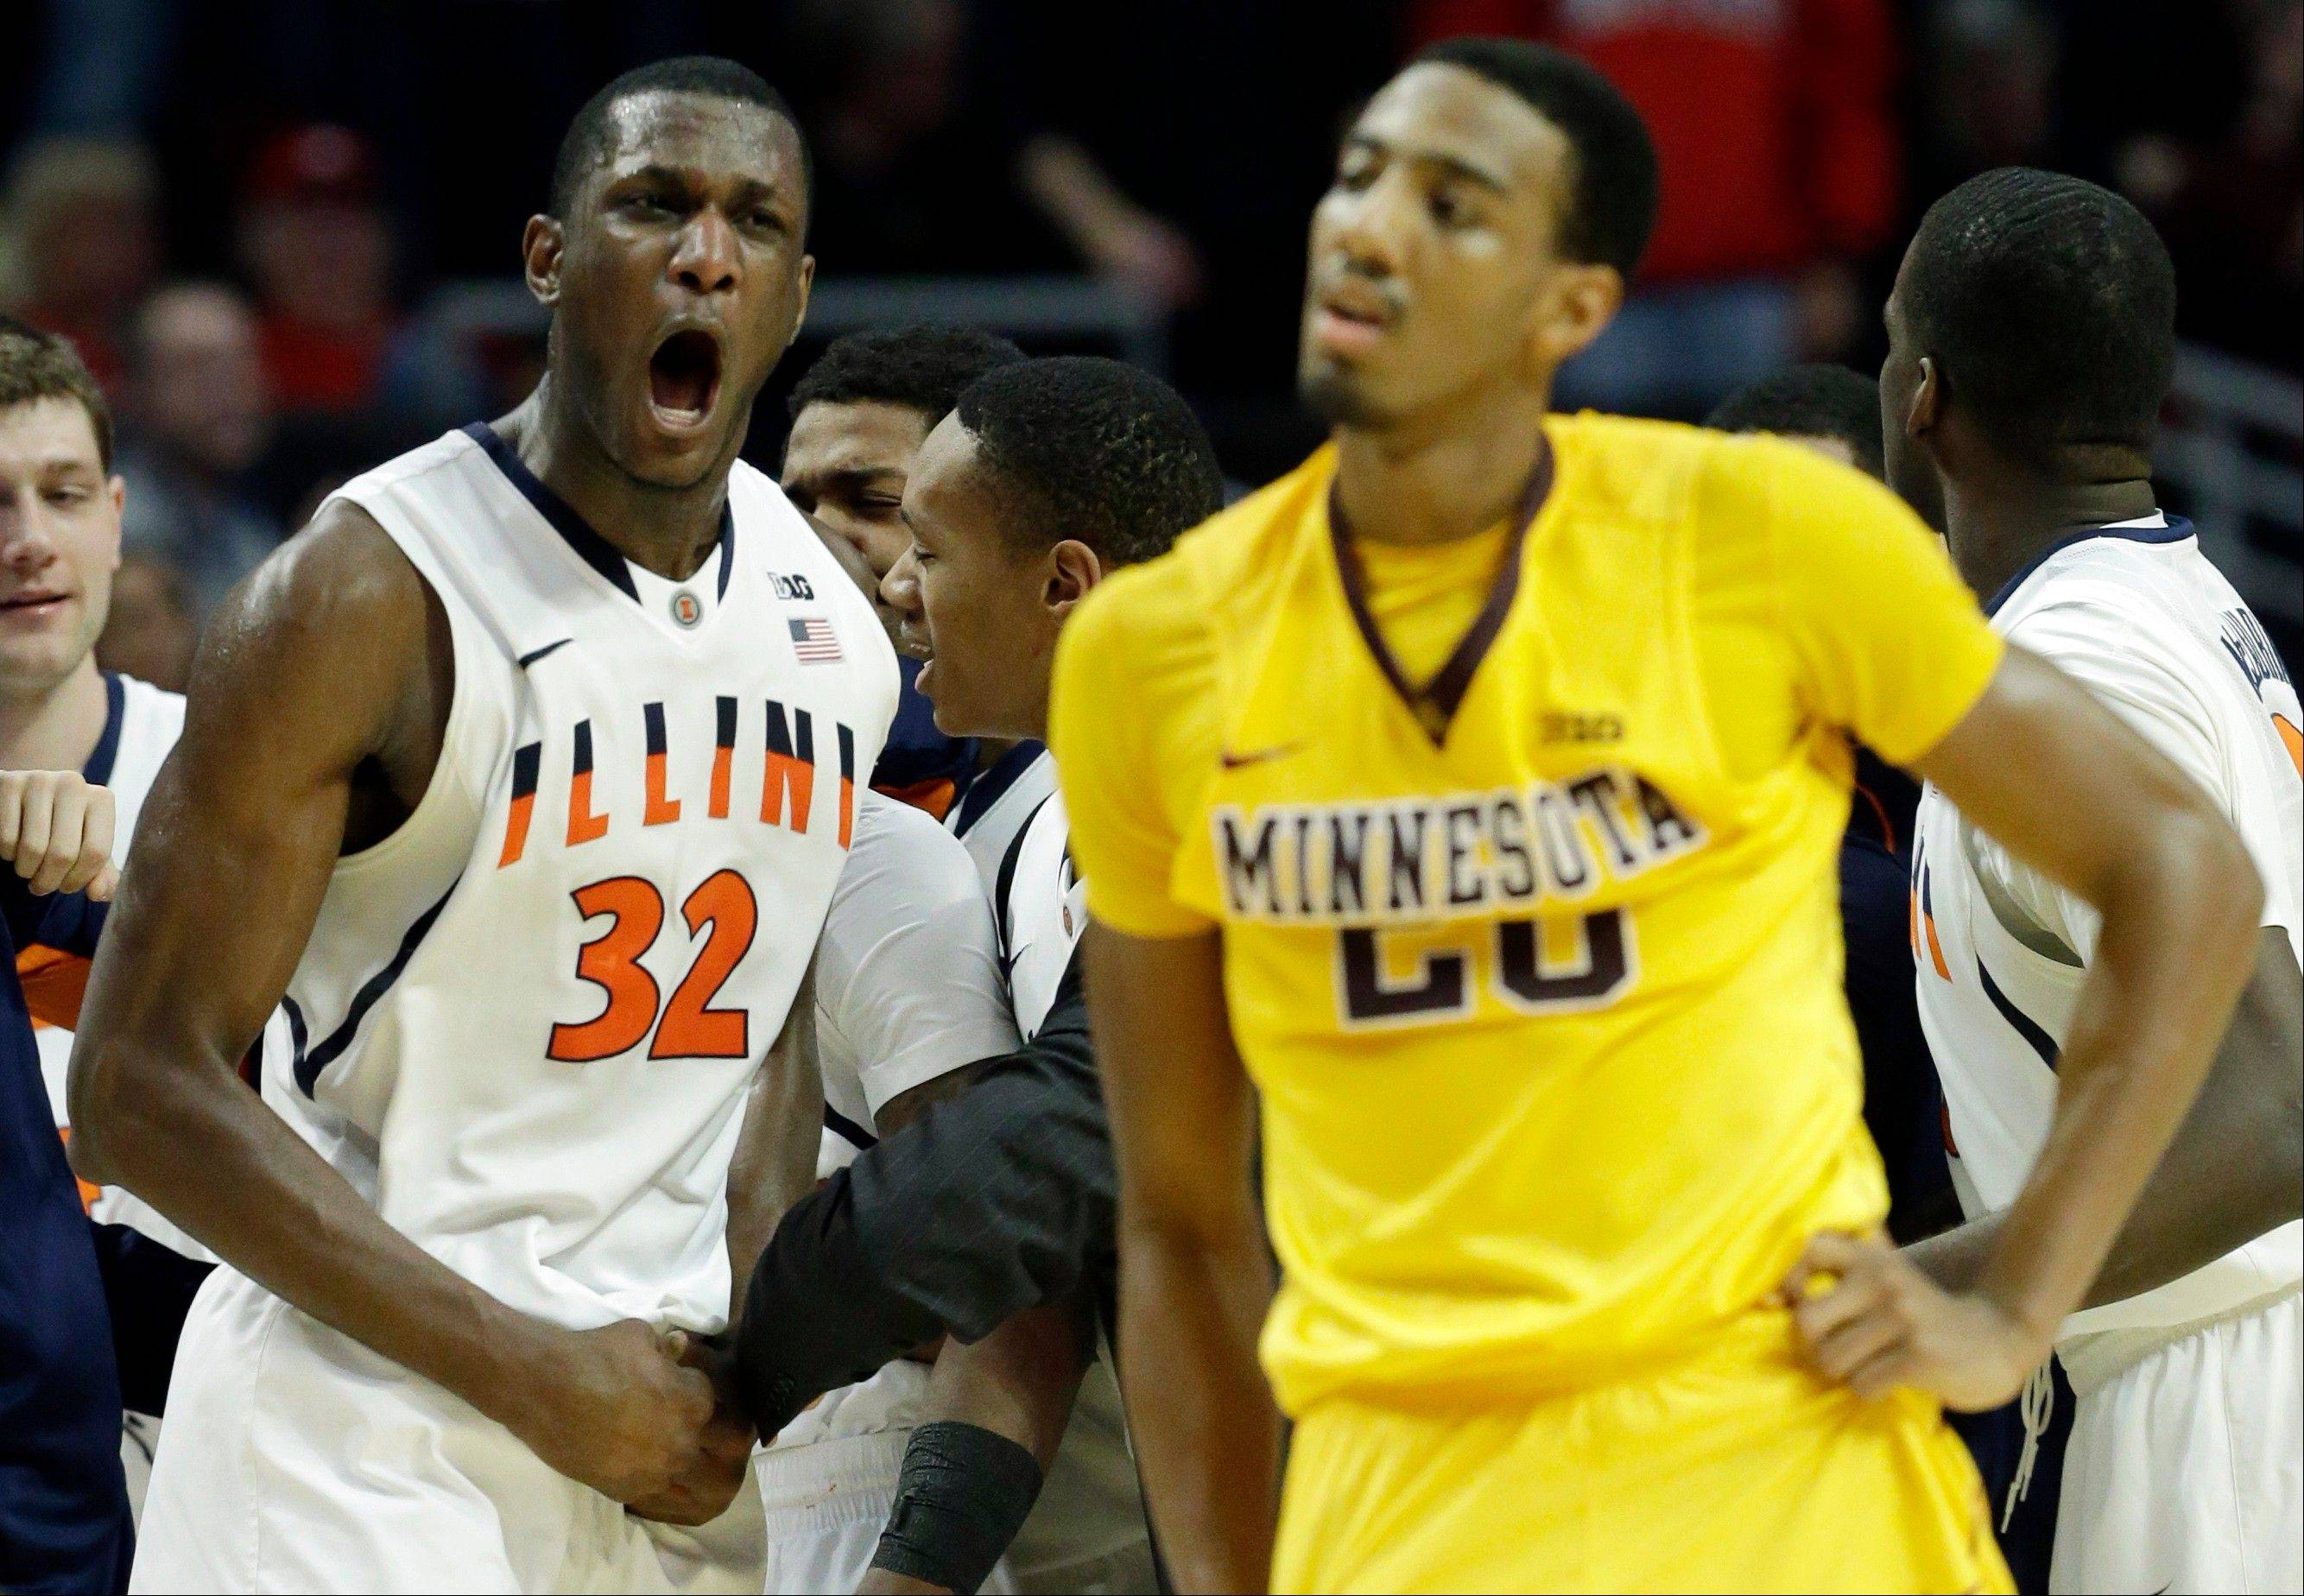 Illinois' Nnanna Egwu reacts in front of Minnesota's Austin Hollins after the second half.